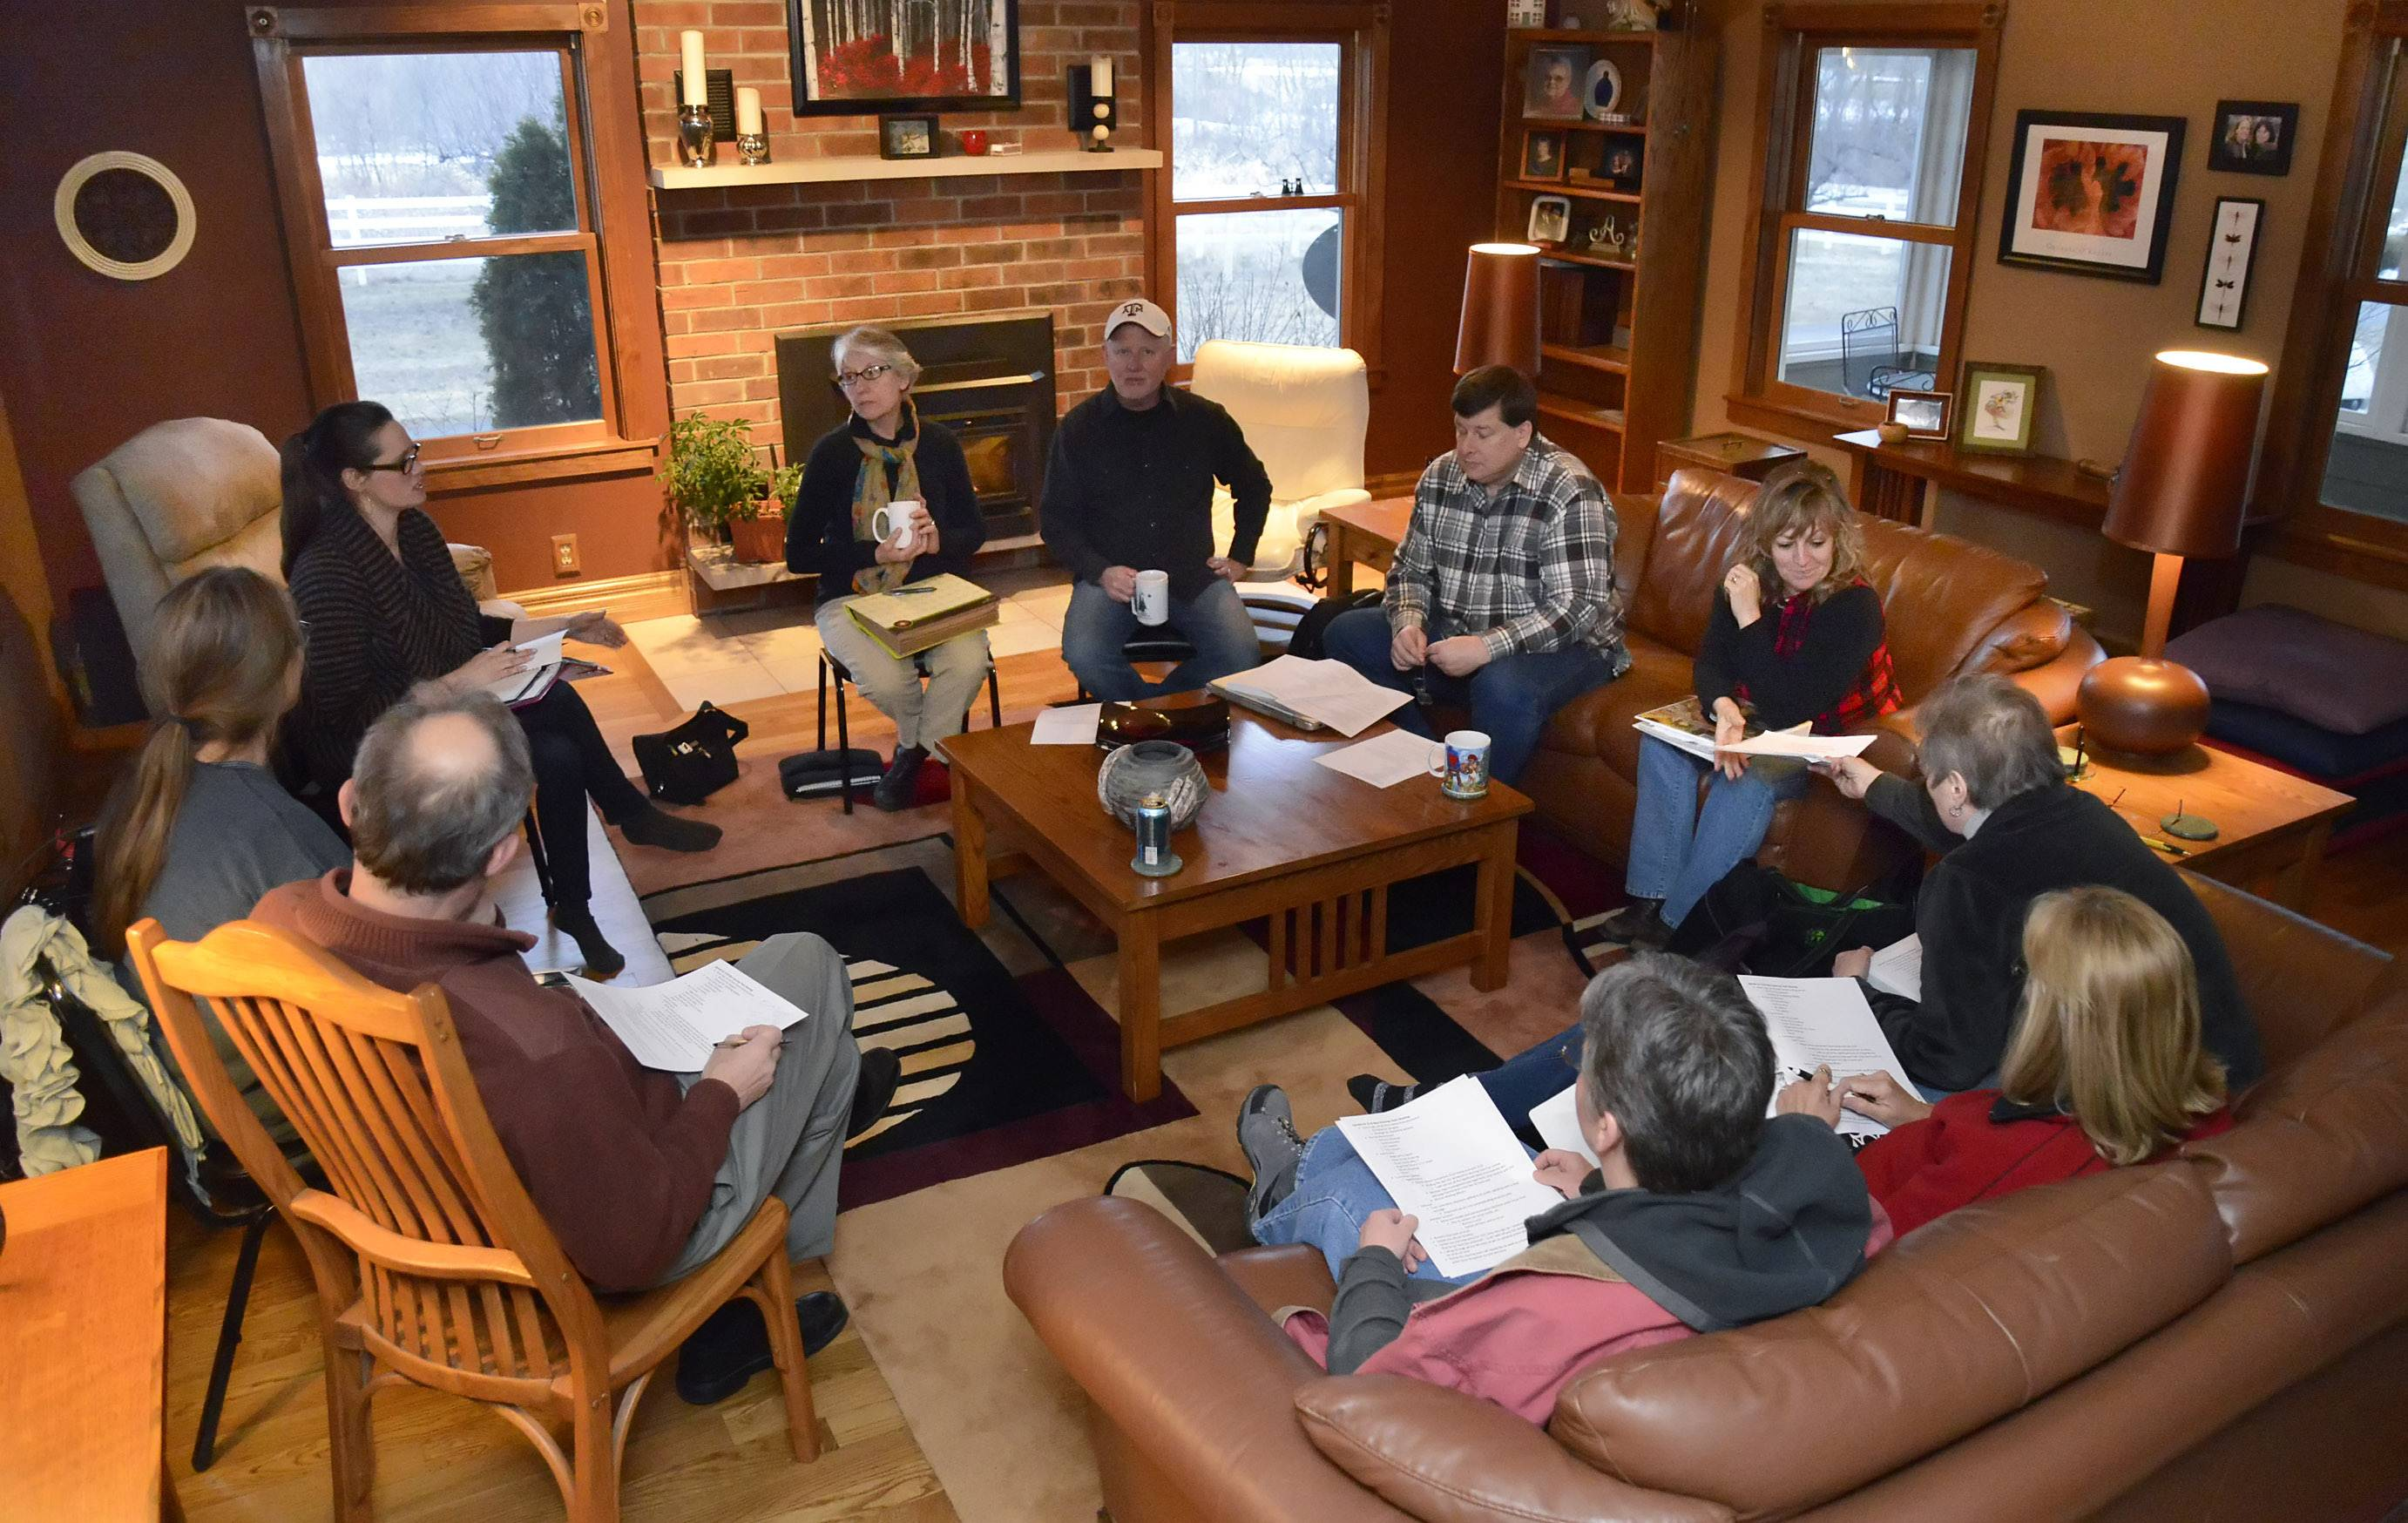 Members of the a yet-to-be-named McHenry area food co-op meet at Scott and Kim Brix's home in Marengo.